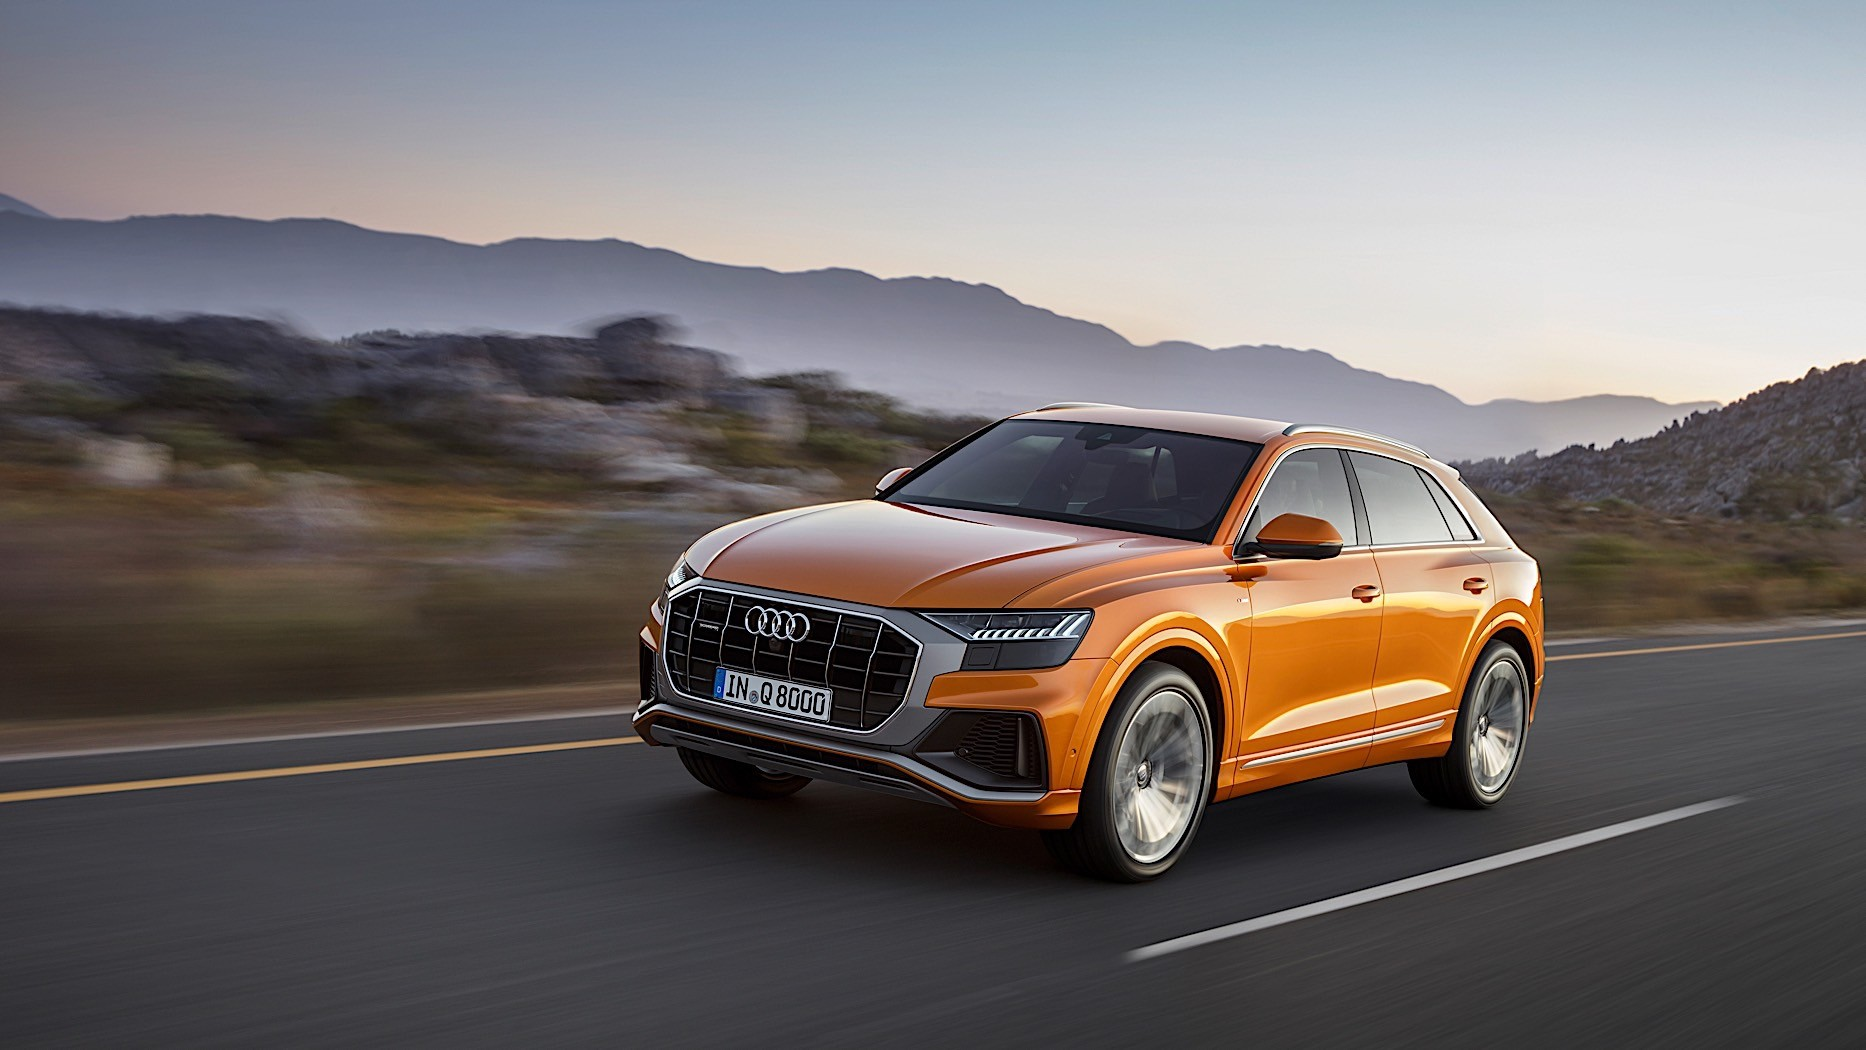 2019 Audi Q8 Spotted With Close To No Camo Reveals Q8 Sport Concept